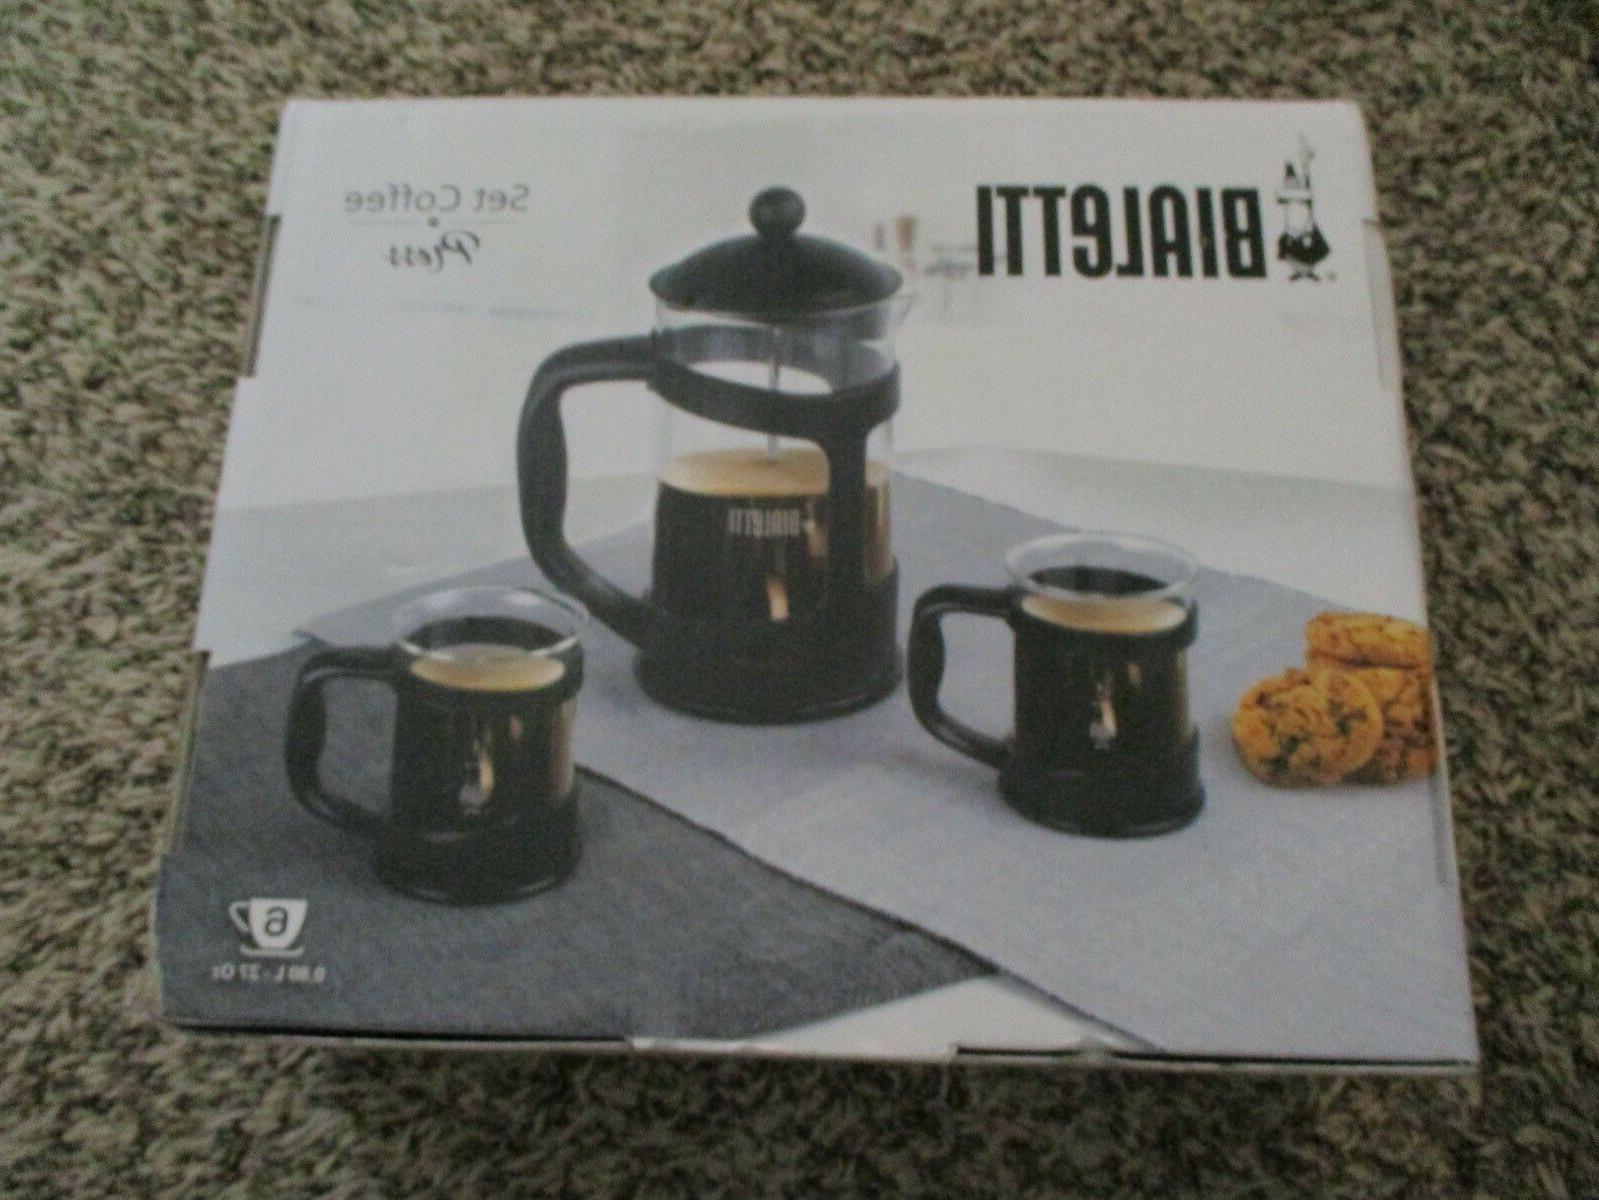 New 6 Cup Press Set with